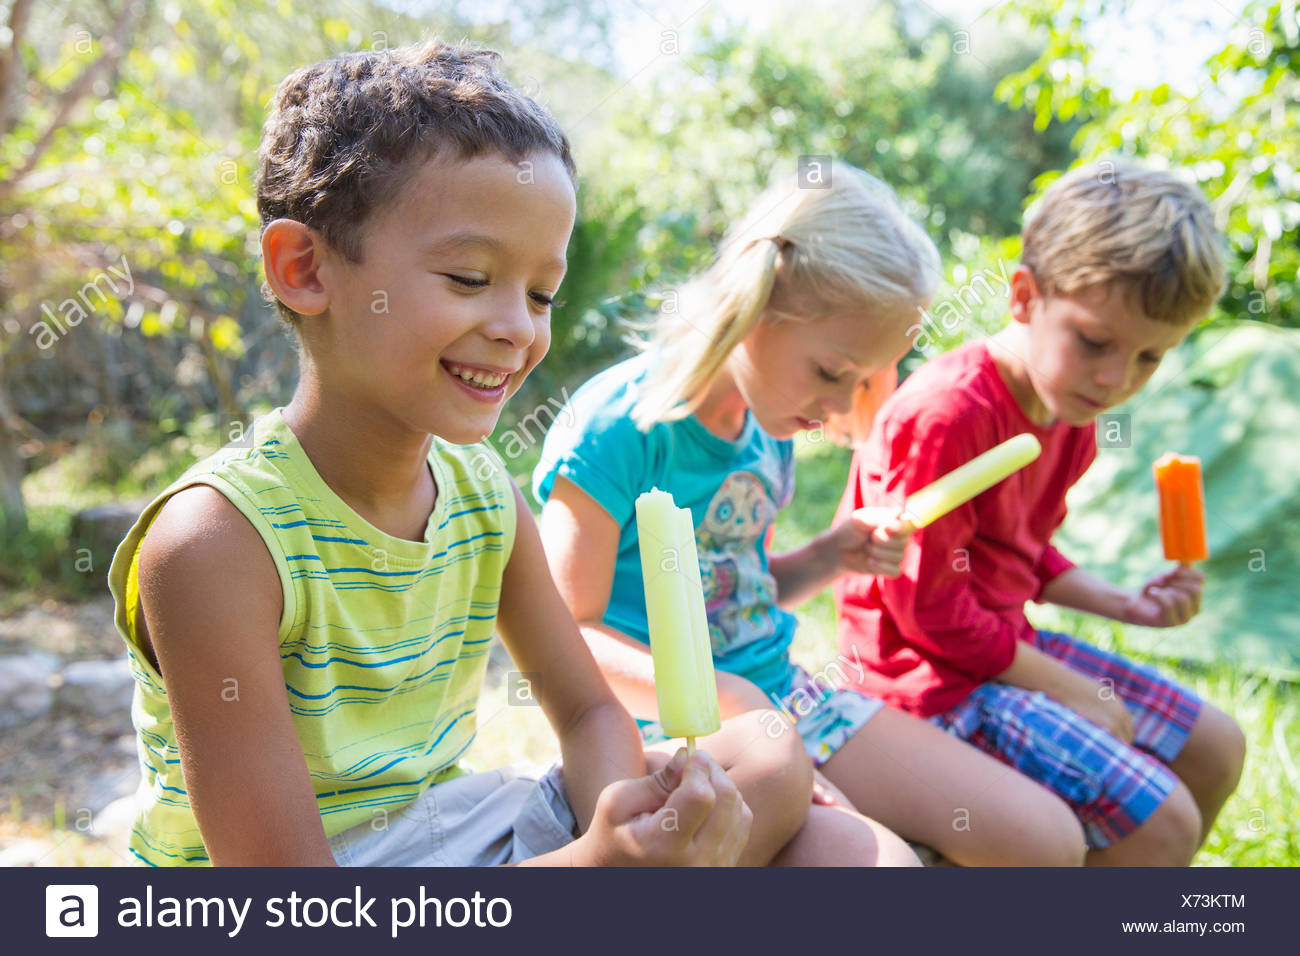 Three children in garden eating ice lollies - Stock Image